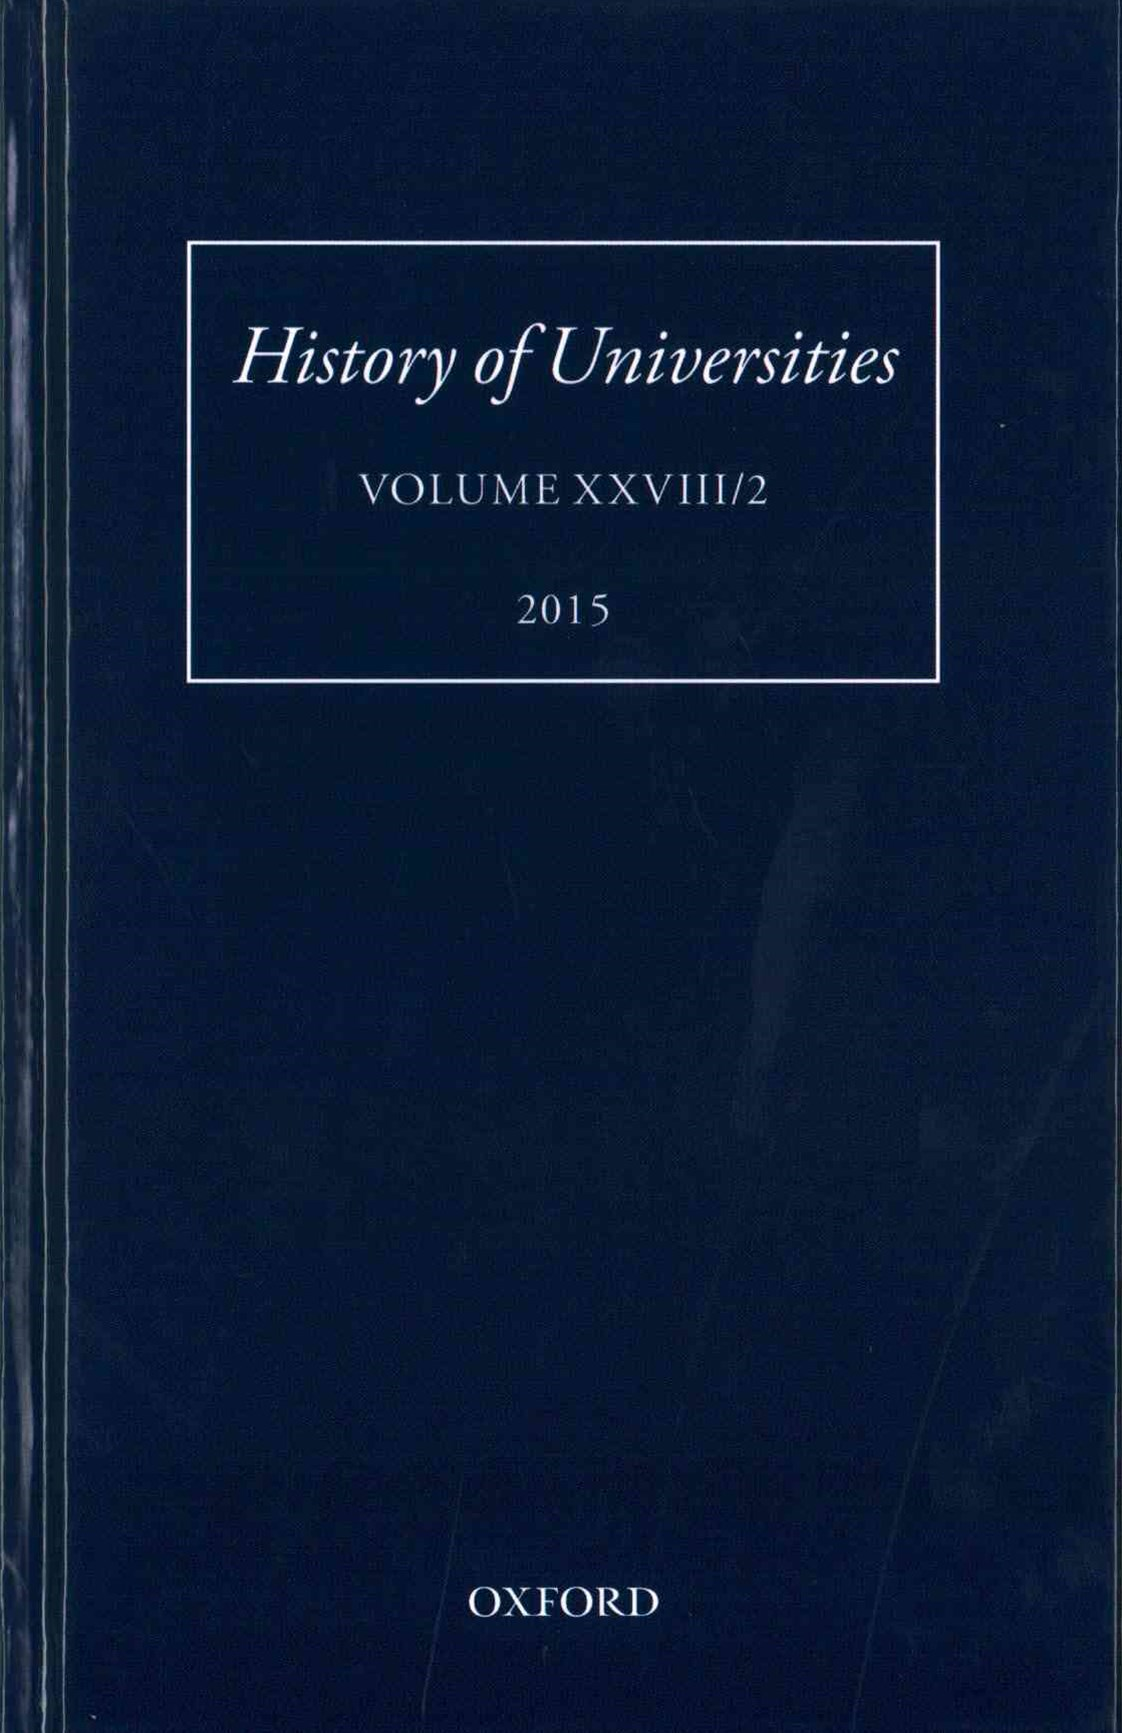 History of Universities, Volume XXVIII